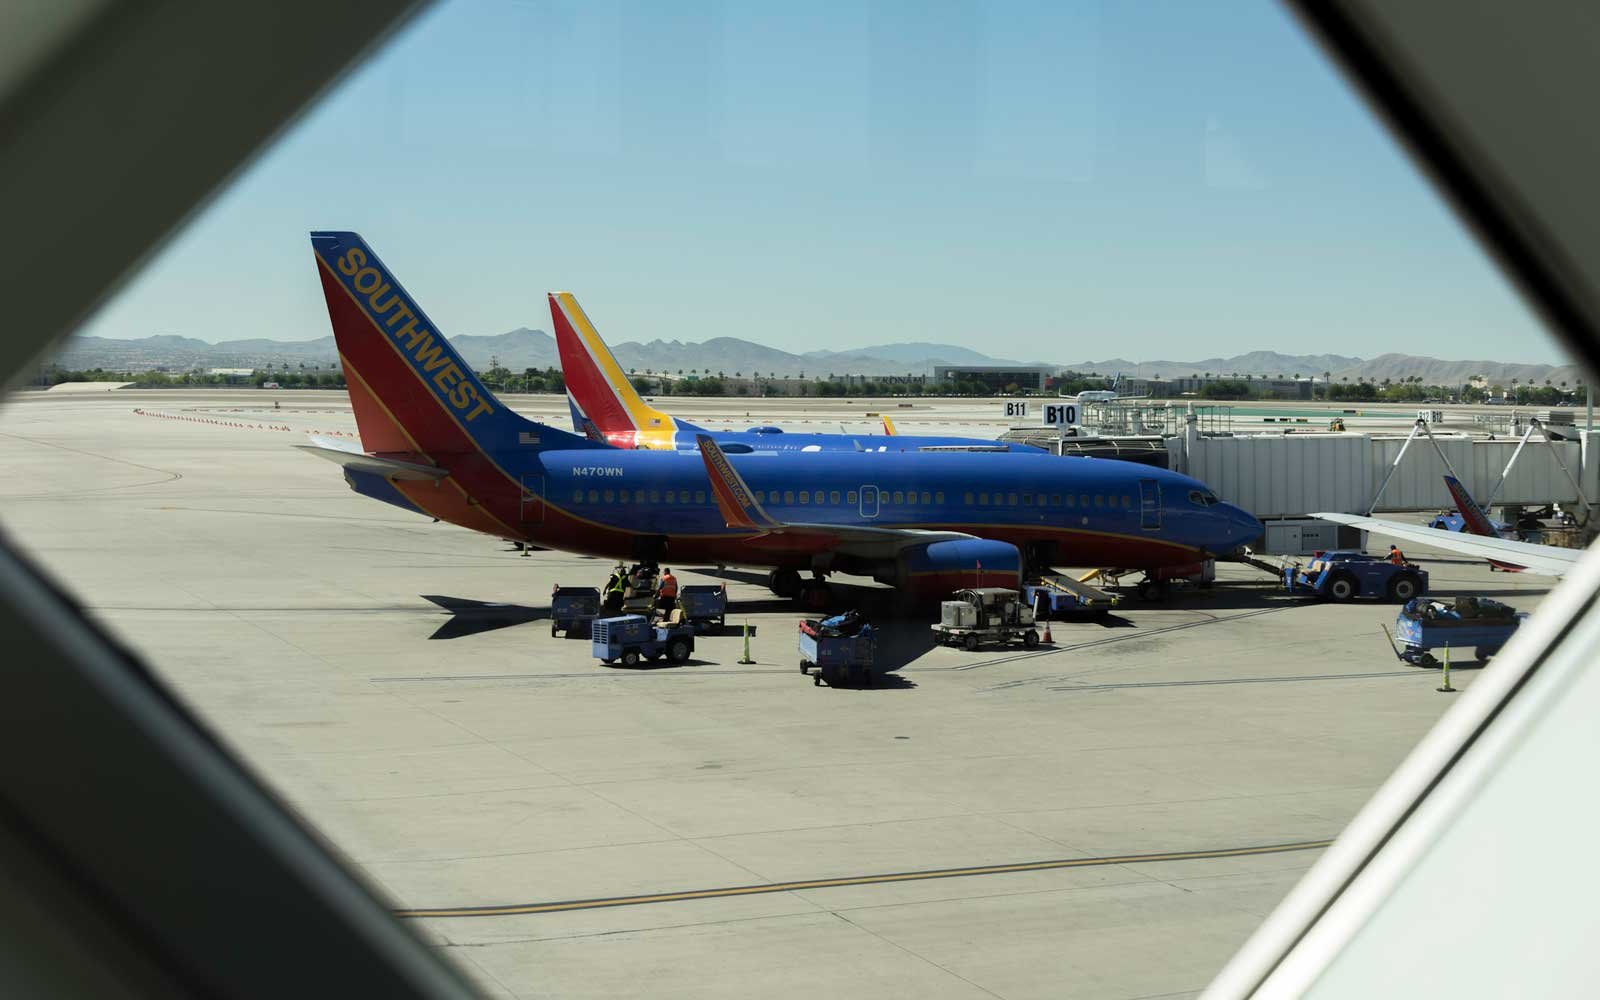 Southwest Airlines plane at gate